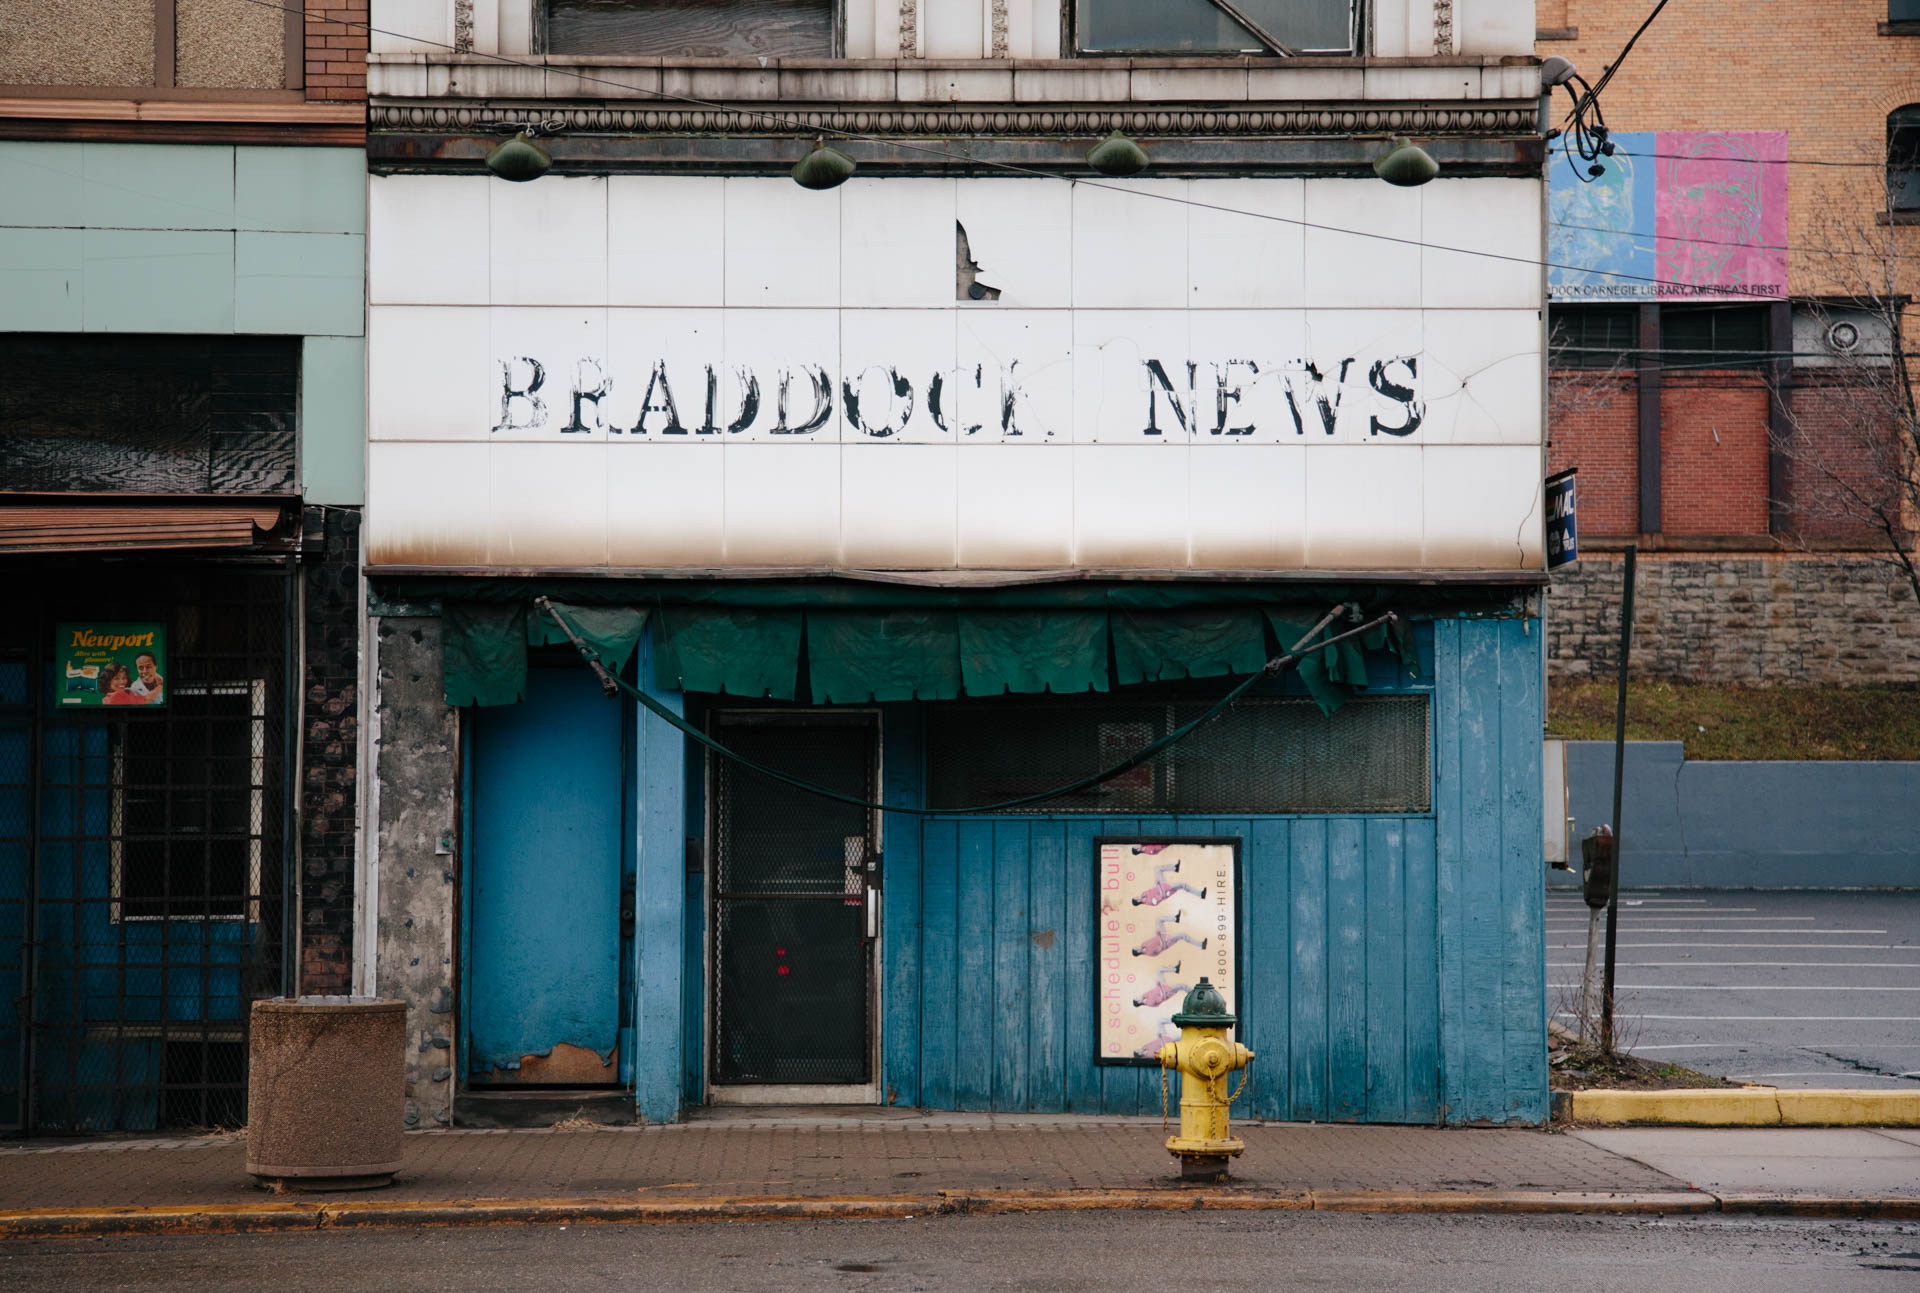 abandoned-braddock-news-building